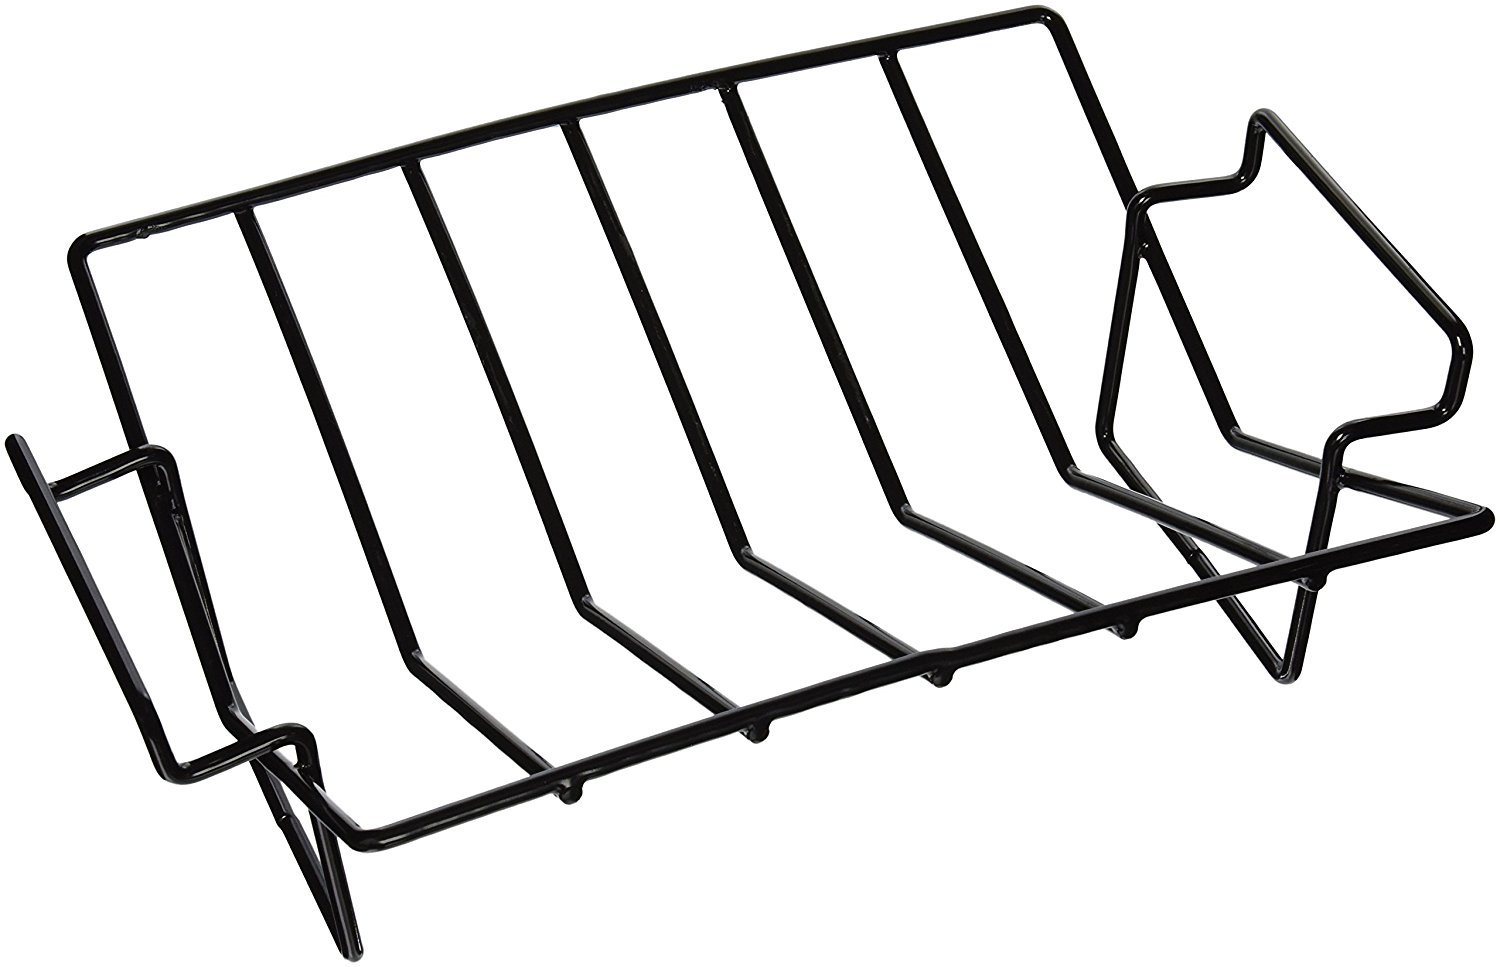 Dracarys Rib Rack For Smoking and grilling,Big Green Egg Accessories Roasting Rack,Porcelain Coated Steel smoker accessories Dual-Purpose Fits for Large Big Green Egg,Weber,Kamado Joe,Primo,VisionEtc. by Dracarys